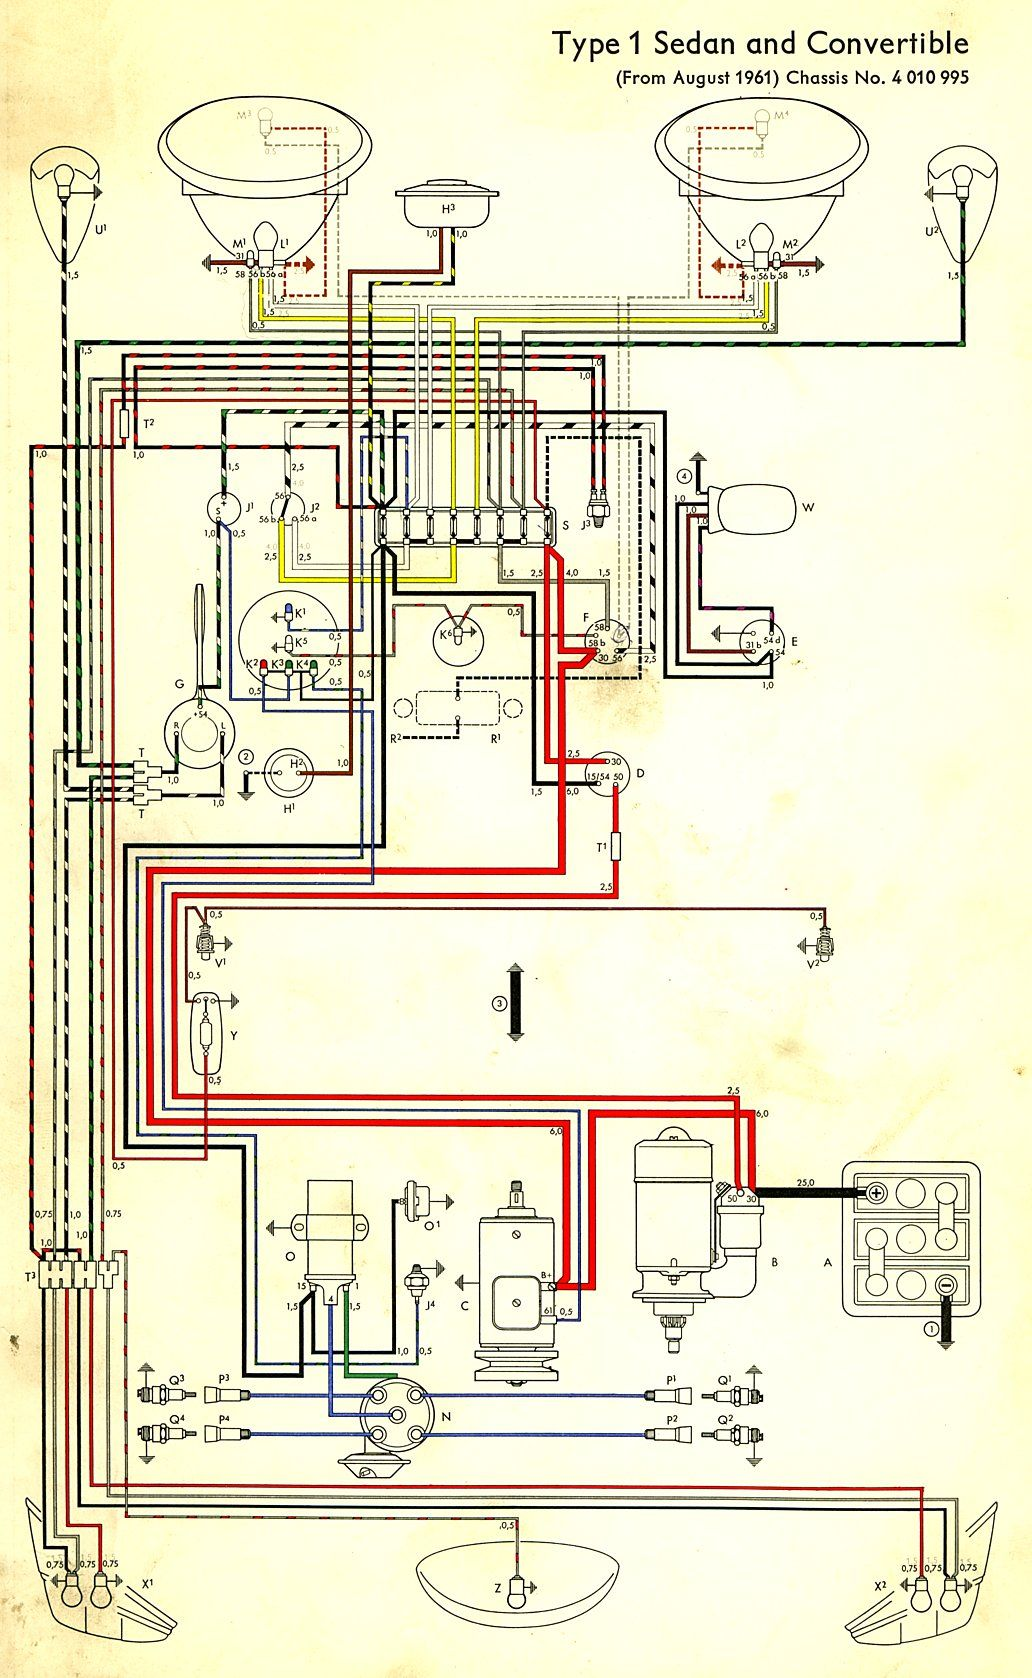 wiring diagram in color 1964 vw bug beetle convertible the samba rh pinterest com vw beetle wiring diagram 1970 wiring diagram vw beetle 1973